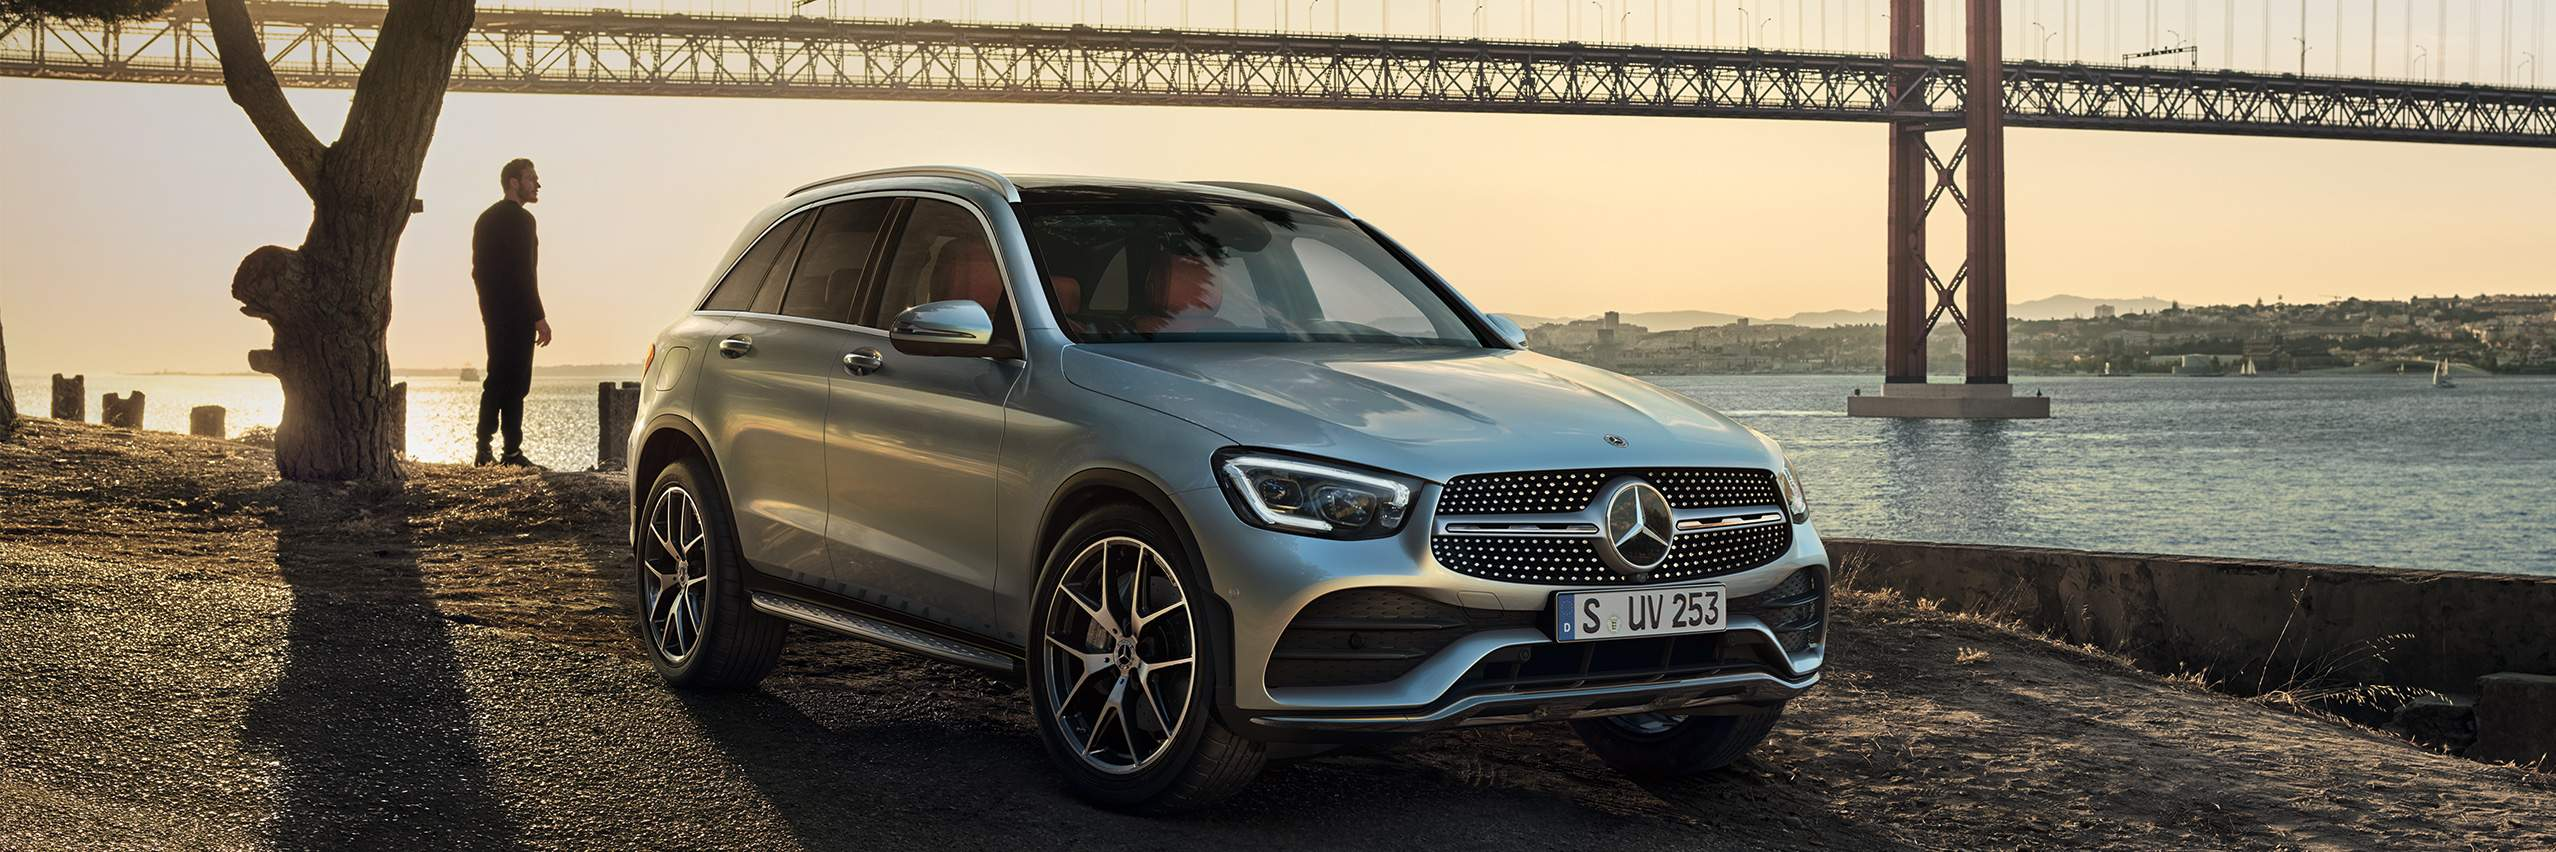 CAR-Avenue-Mercedes-Benz-GLC-SUV-06